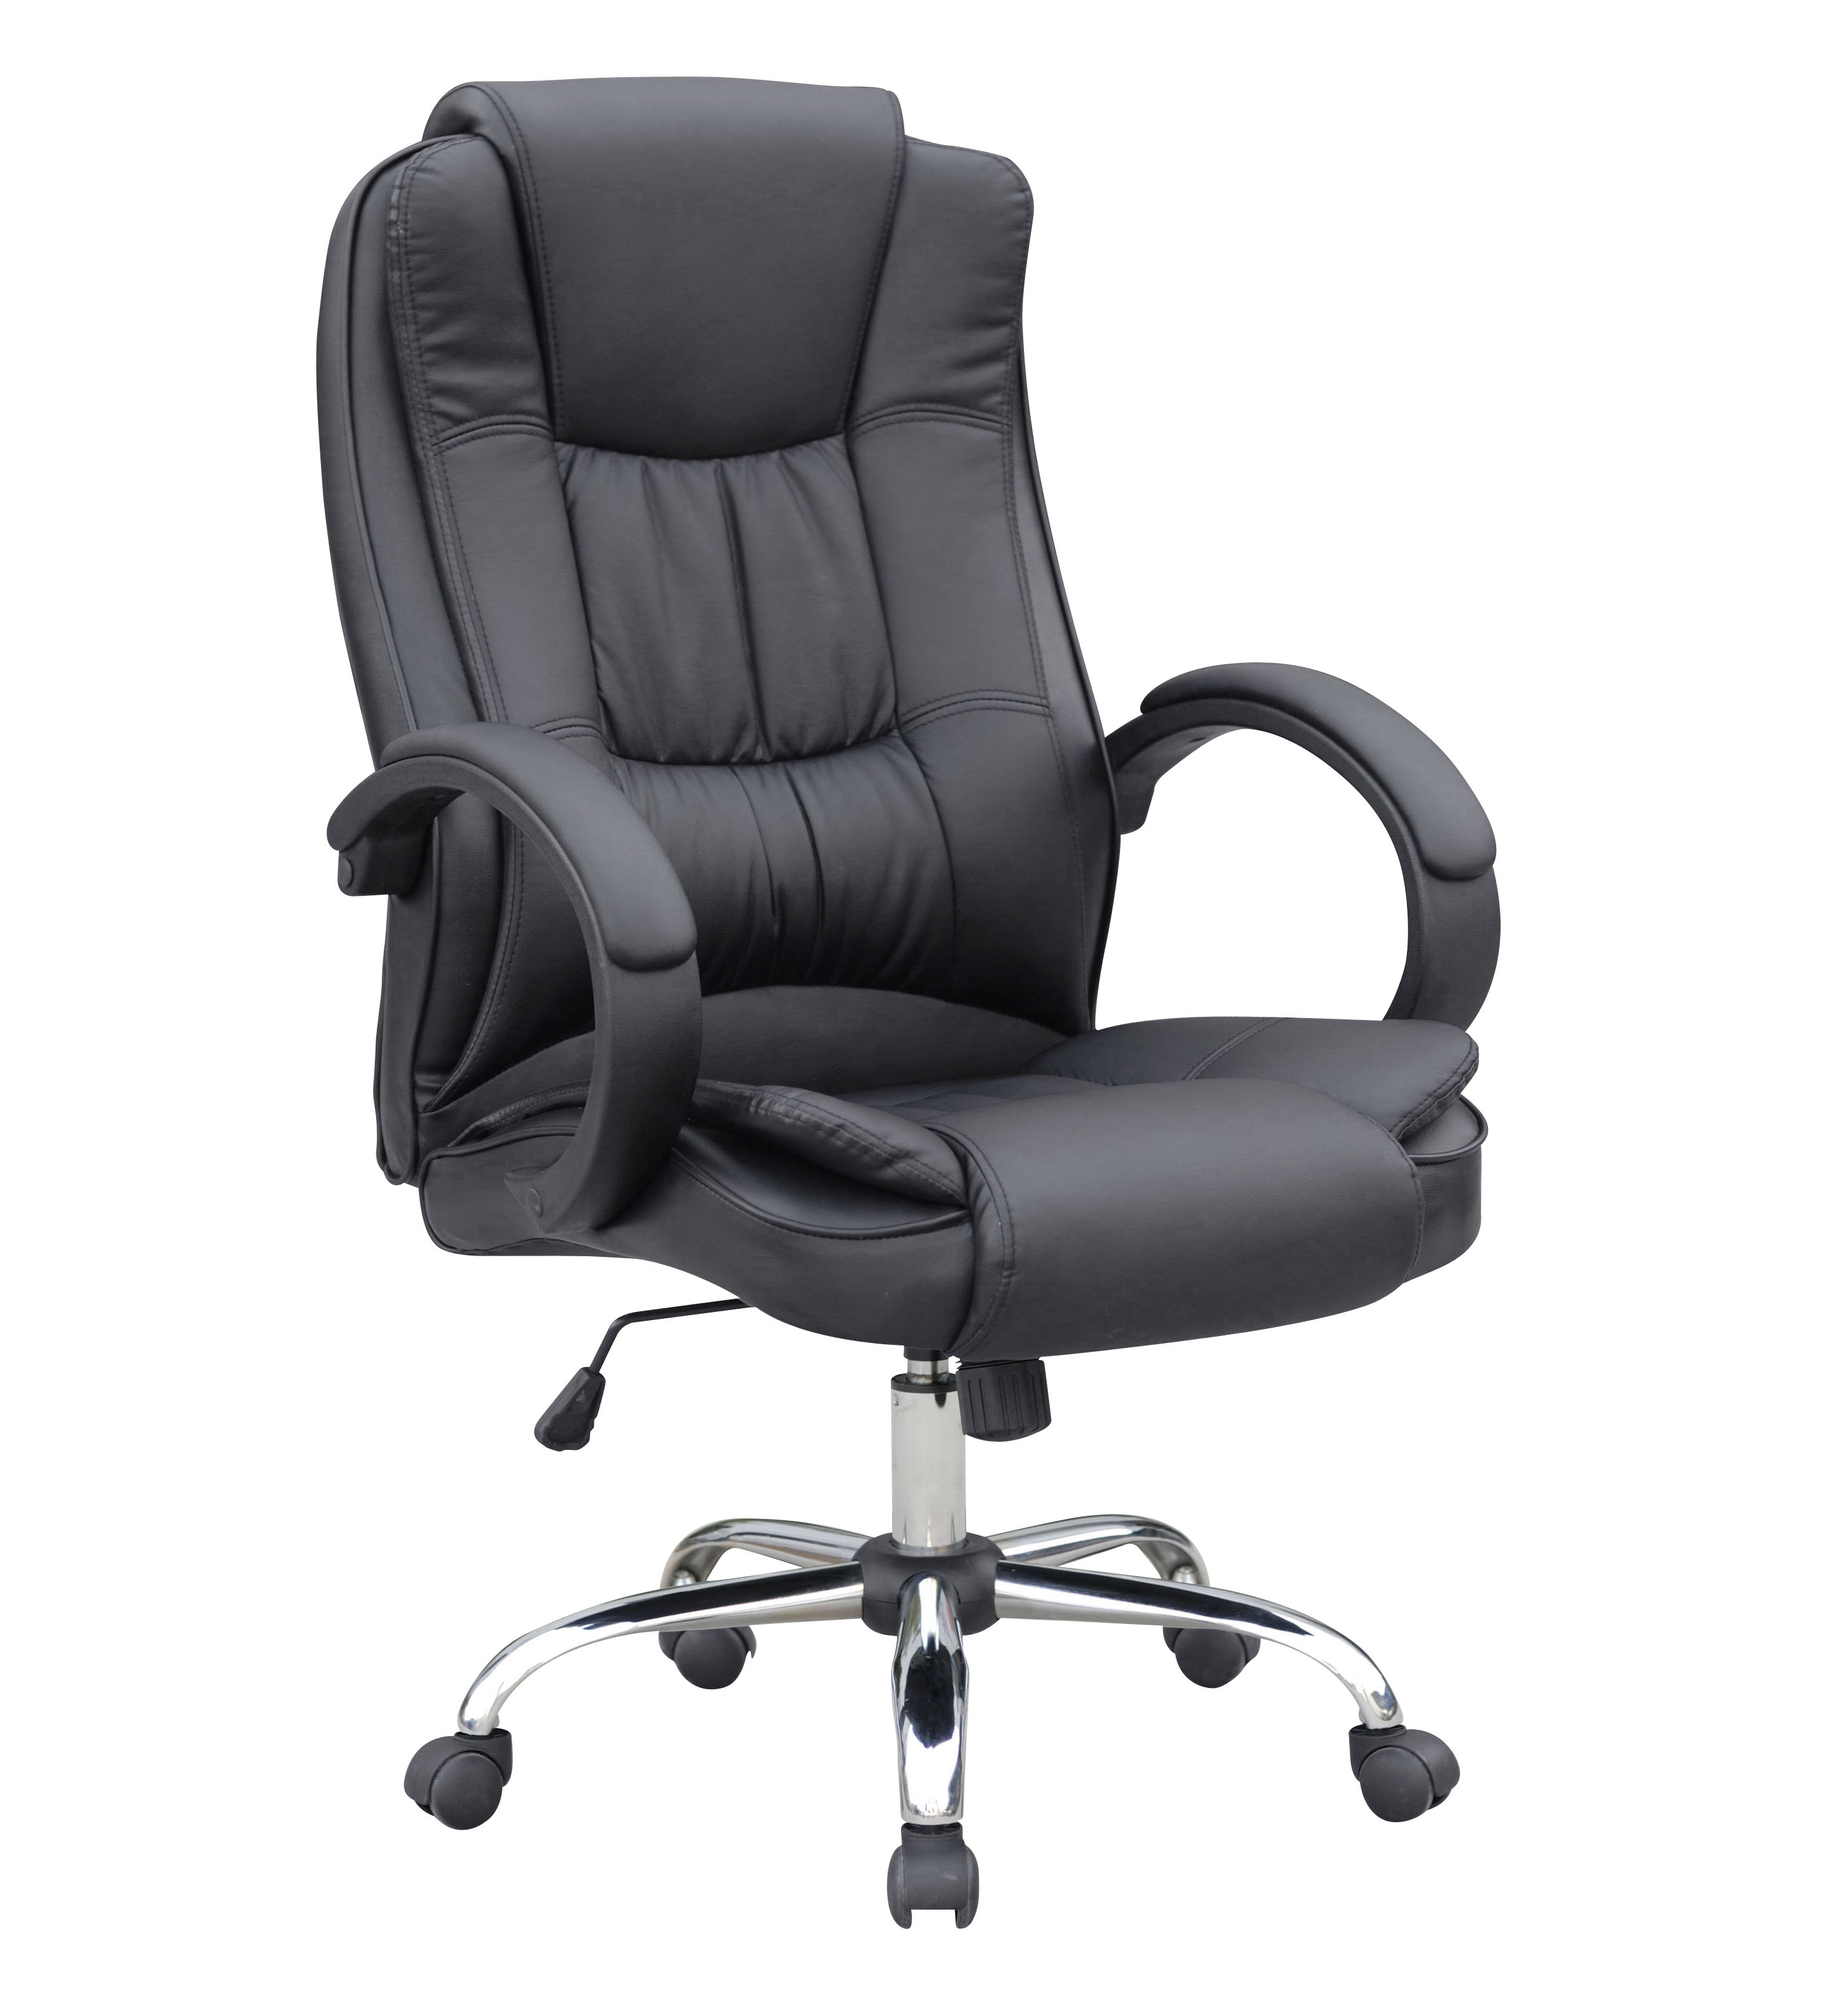 Leather Office Chair Executive High Back PU Manager Office Chair